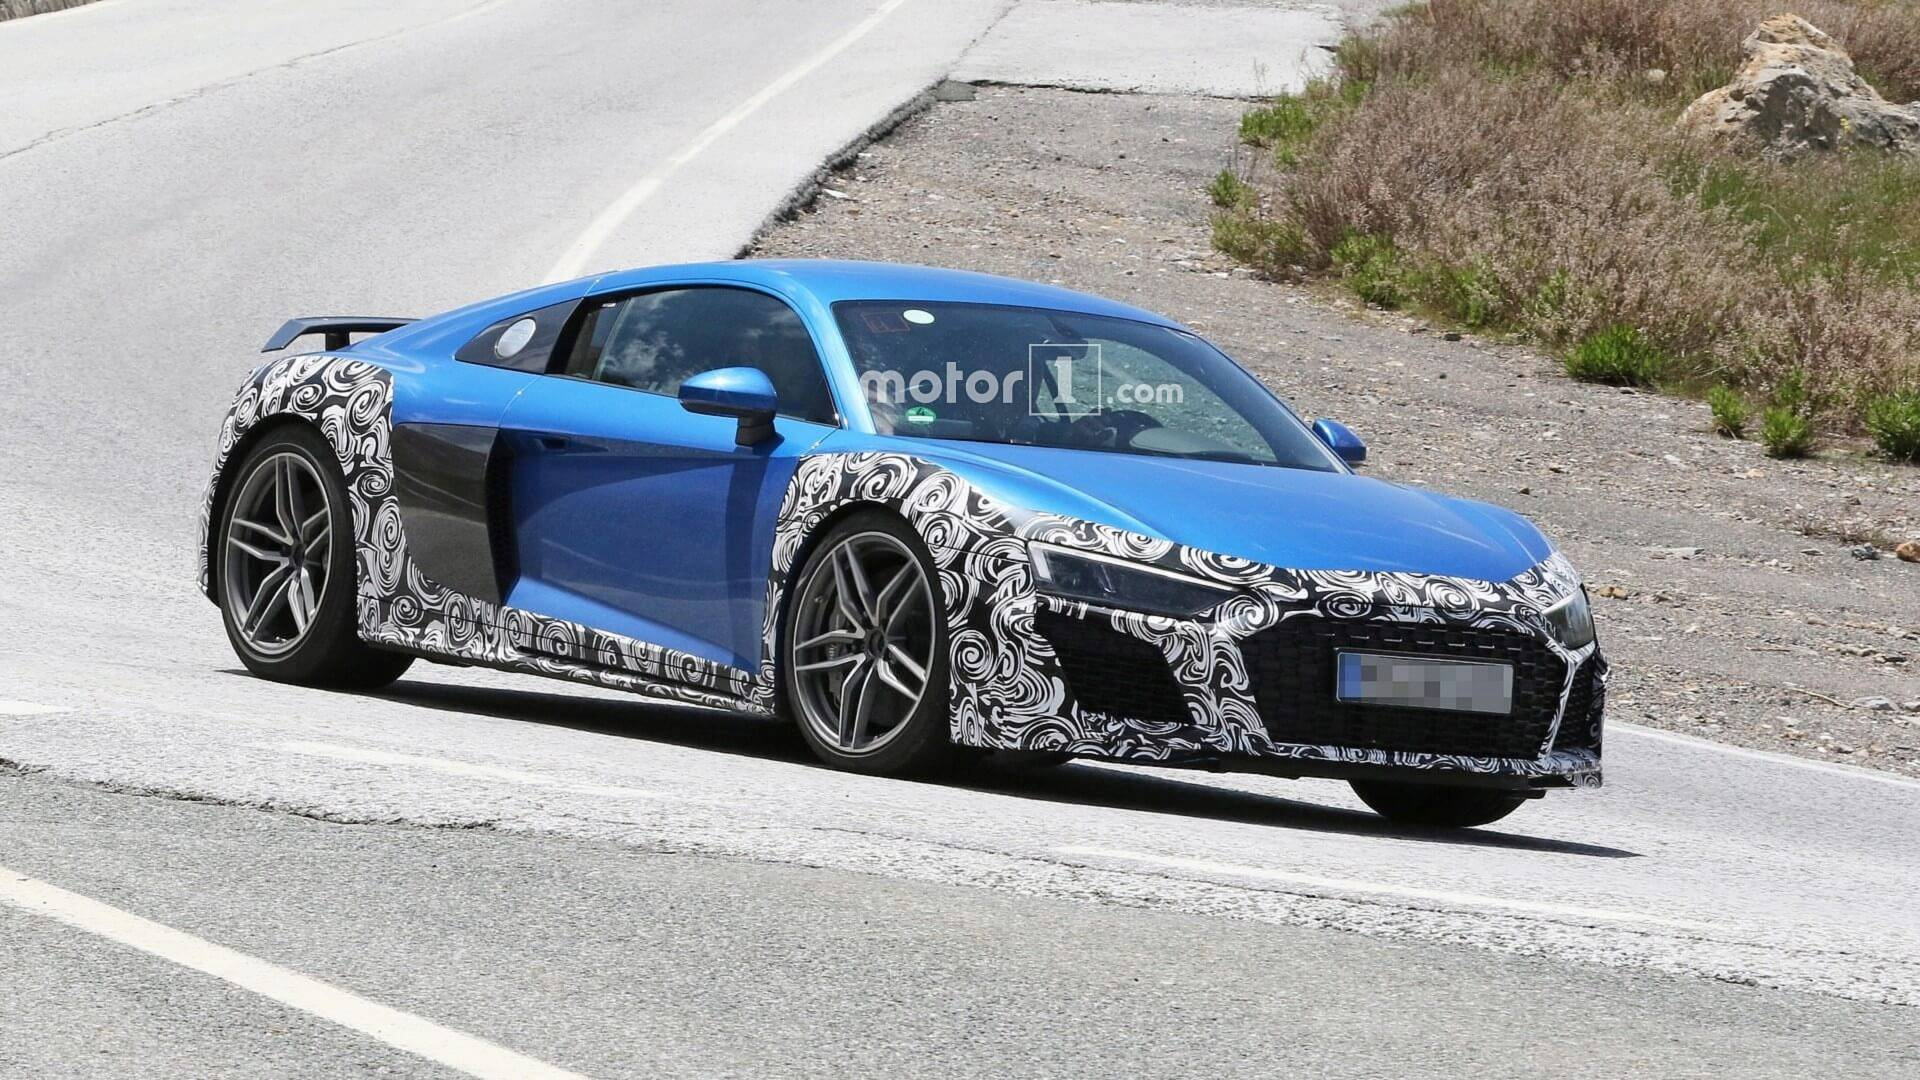 Audi R8 Spied With New Bumpers Oval Exhaust Tips Could Be Gt Model